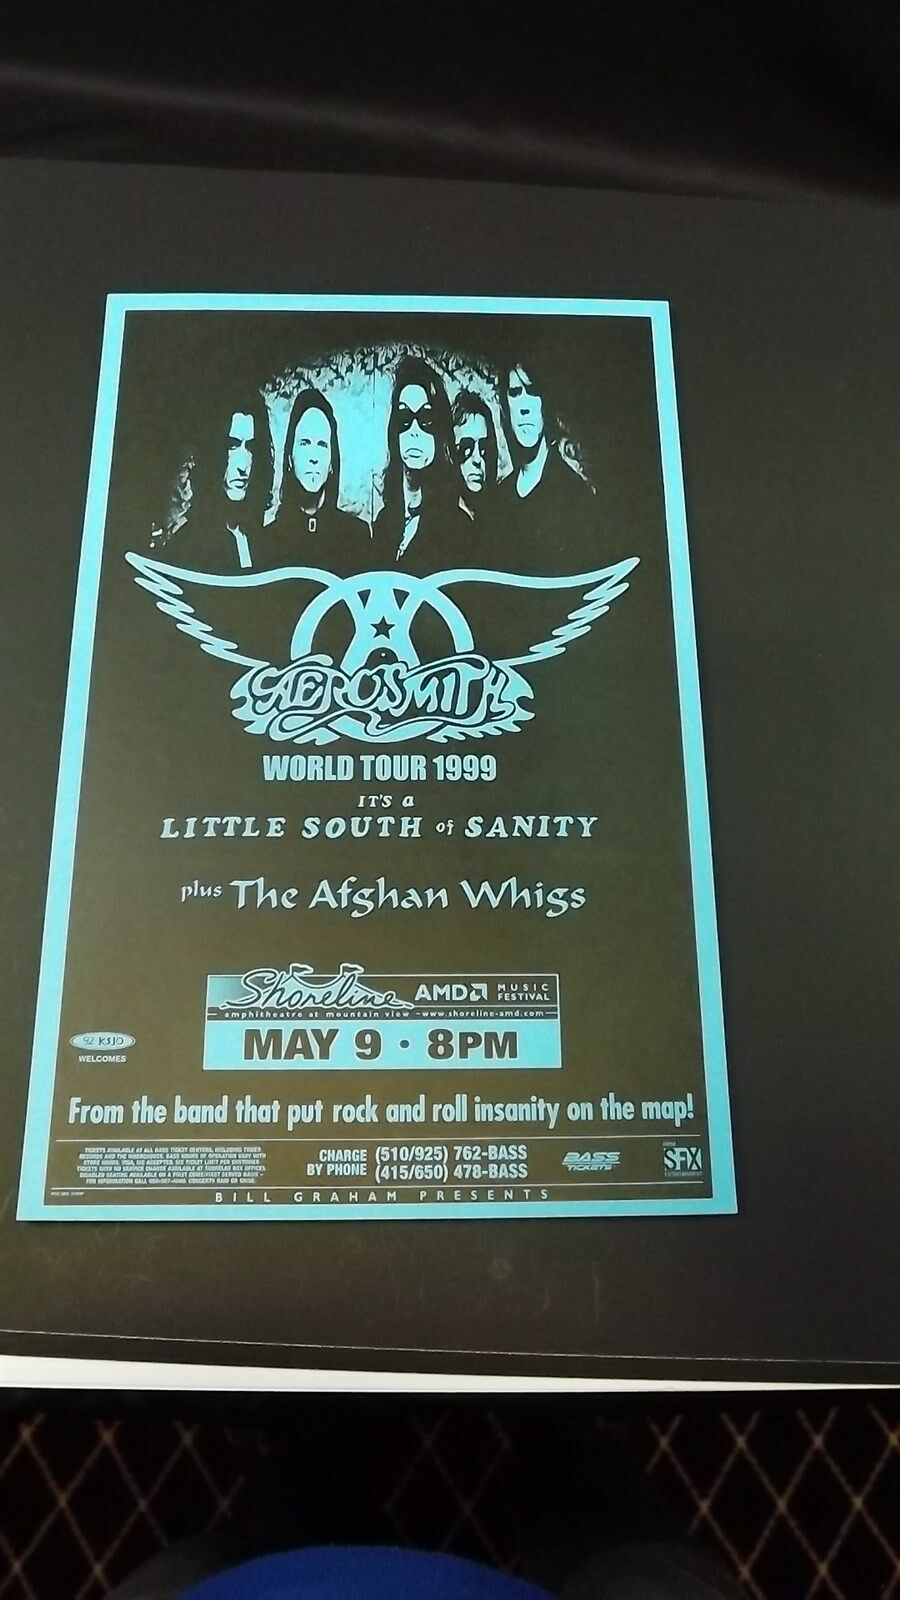 Genuine 1999 AEROSMITH World Tour Music Concert Poster Flyer Ad W/ AFGHAN WHIGS 1